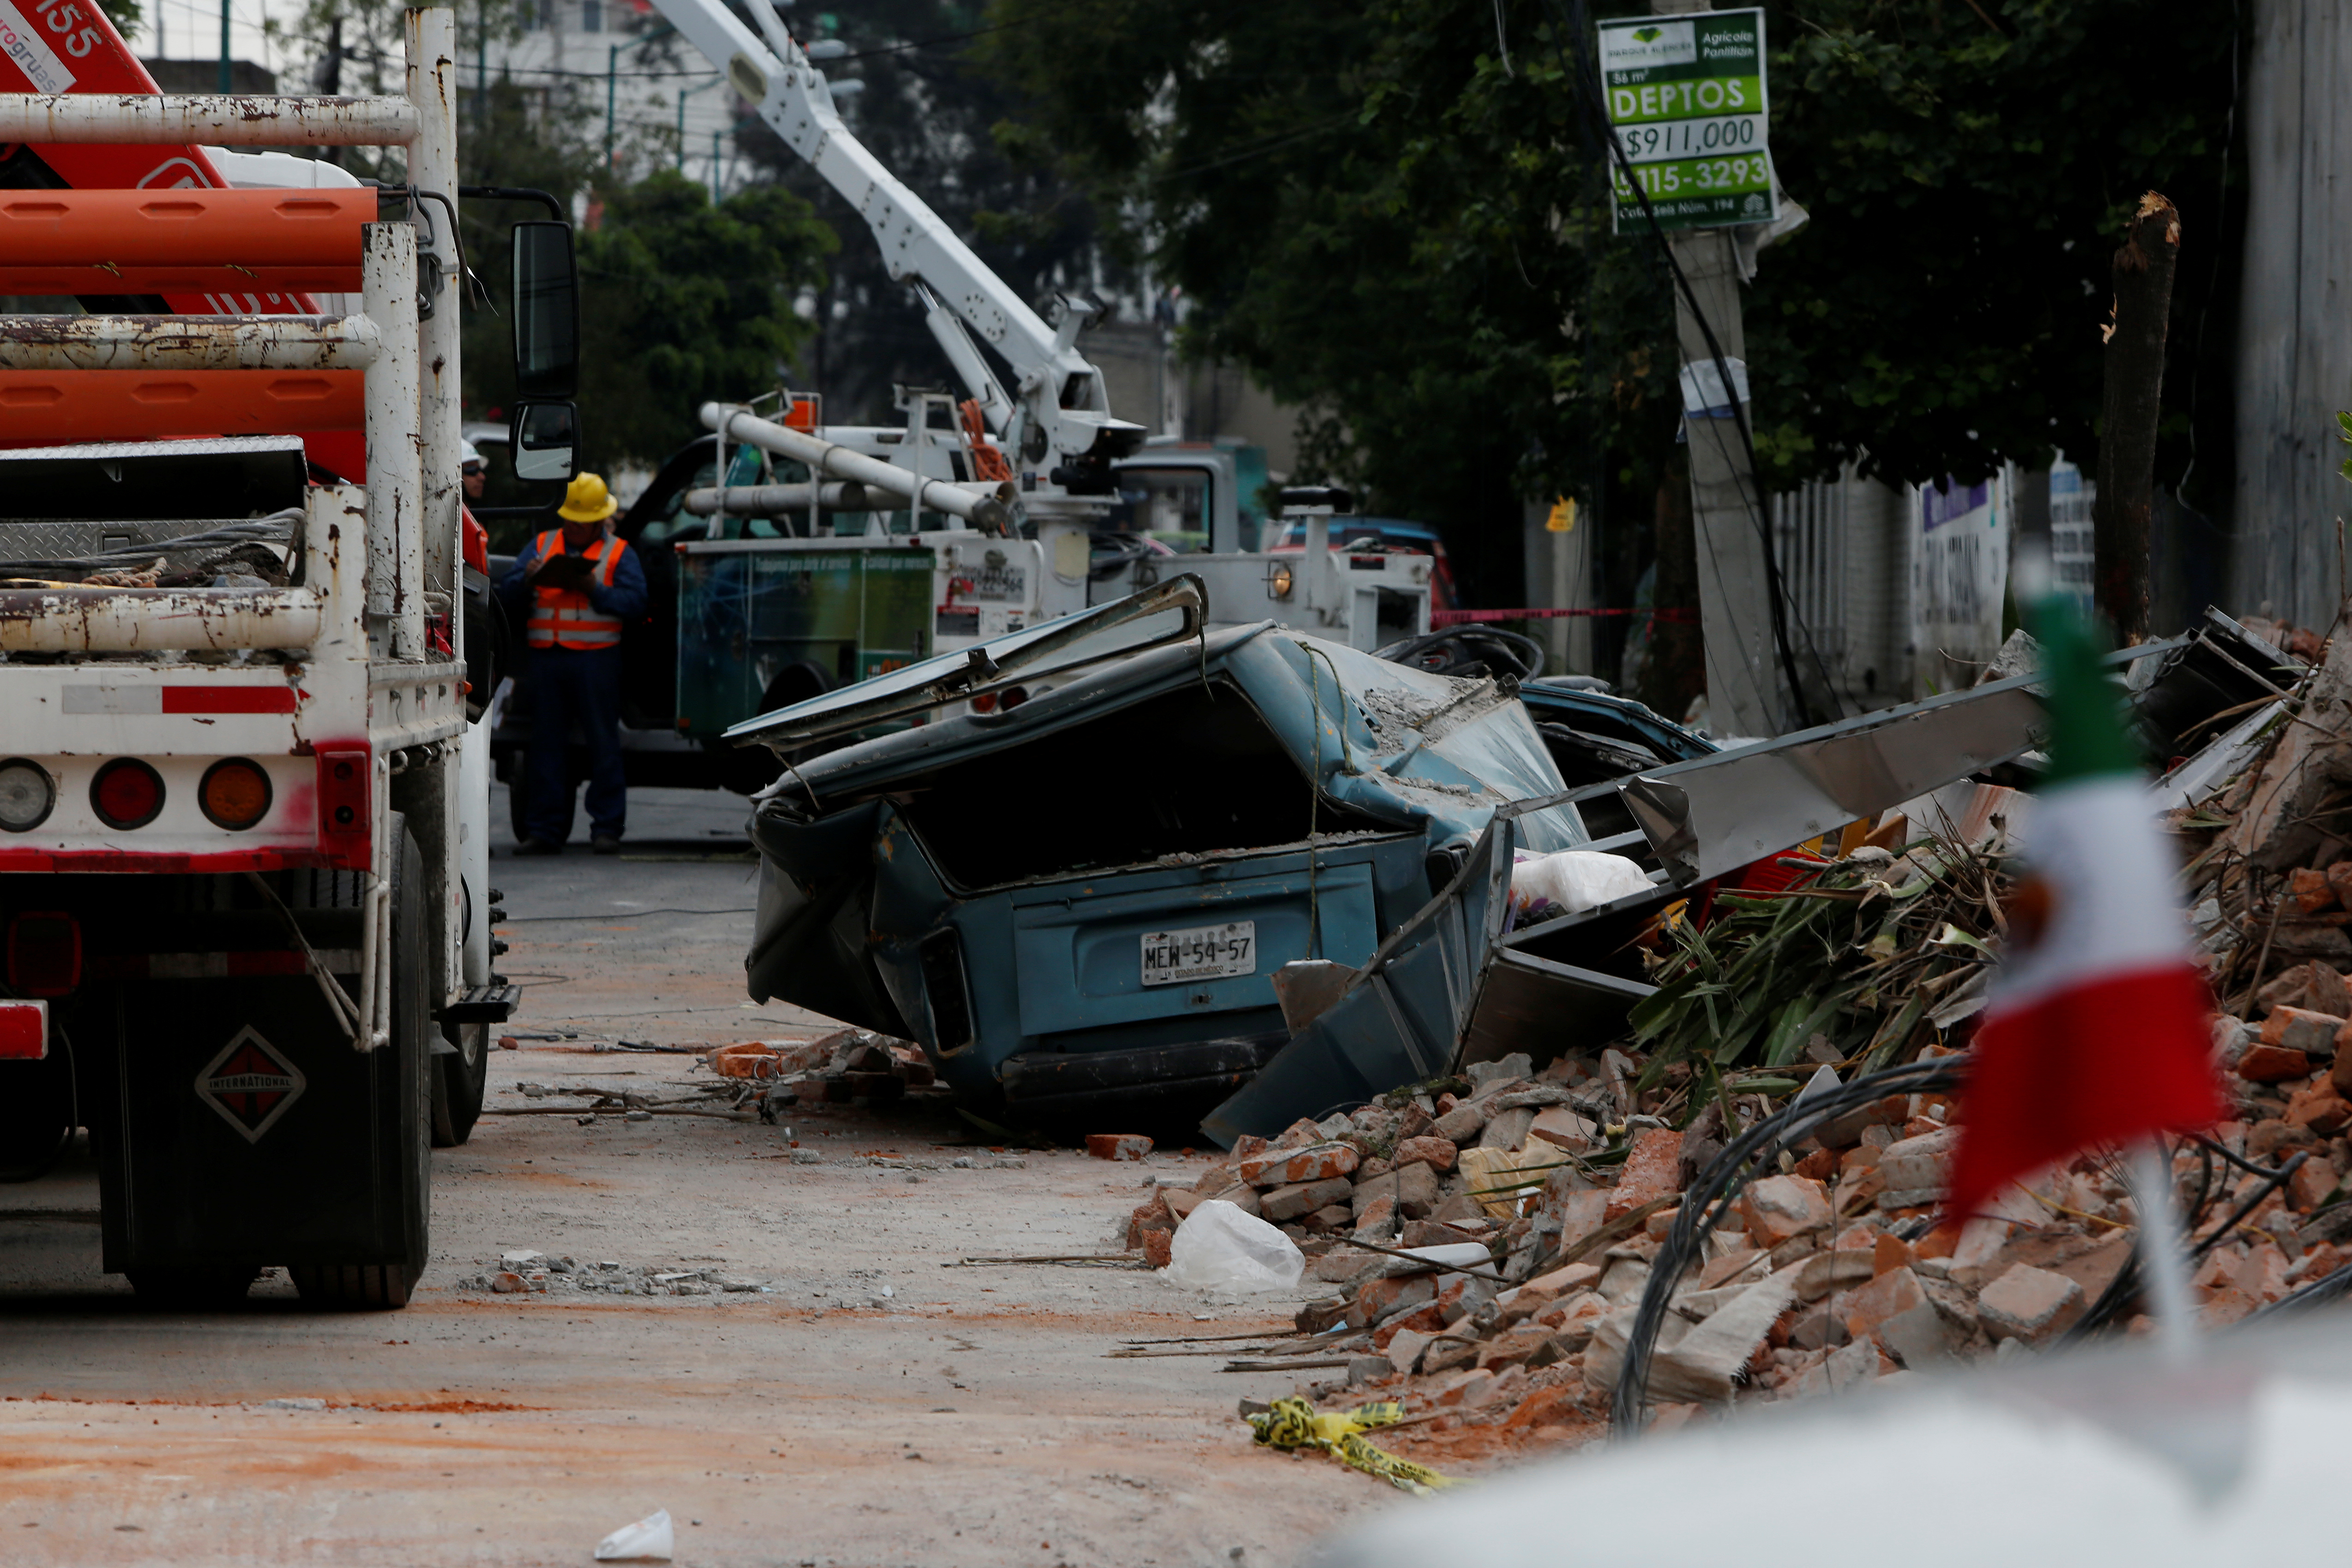 A damaged wall and a smashed vehicle are pictured after an earthquake in Mexico City, Mexico on Sept. 8, 2017. (REUTERS/Carlos Jasso)